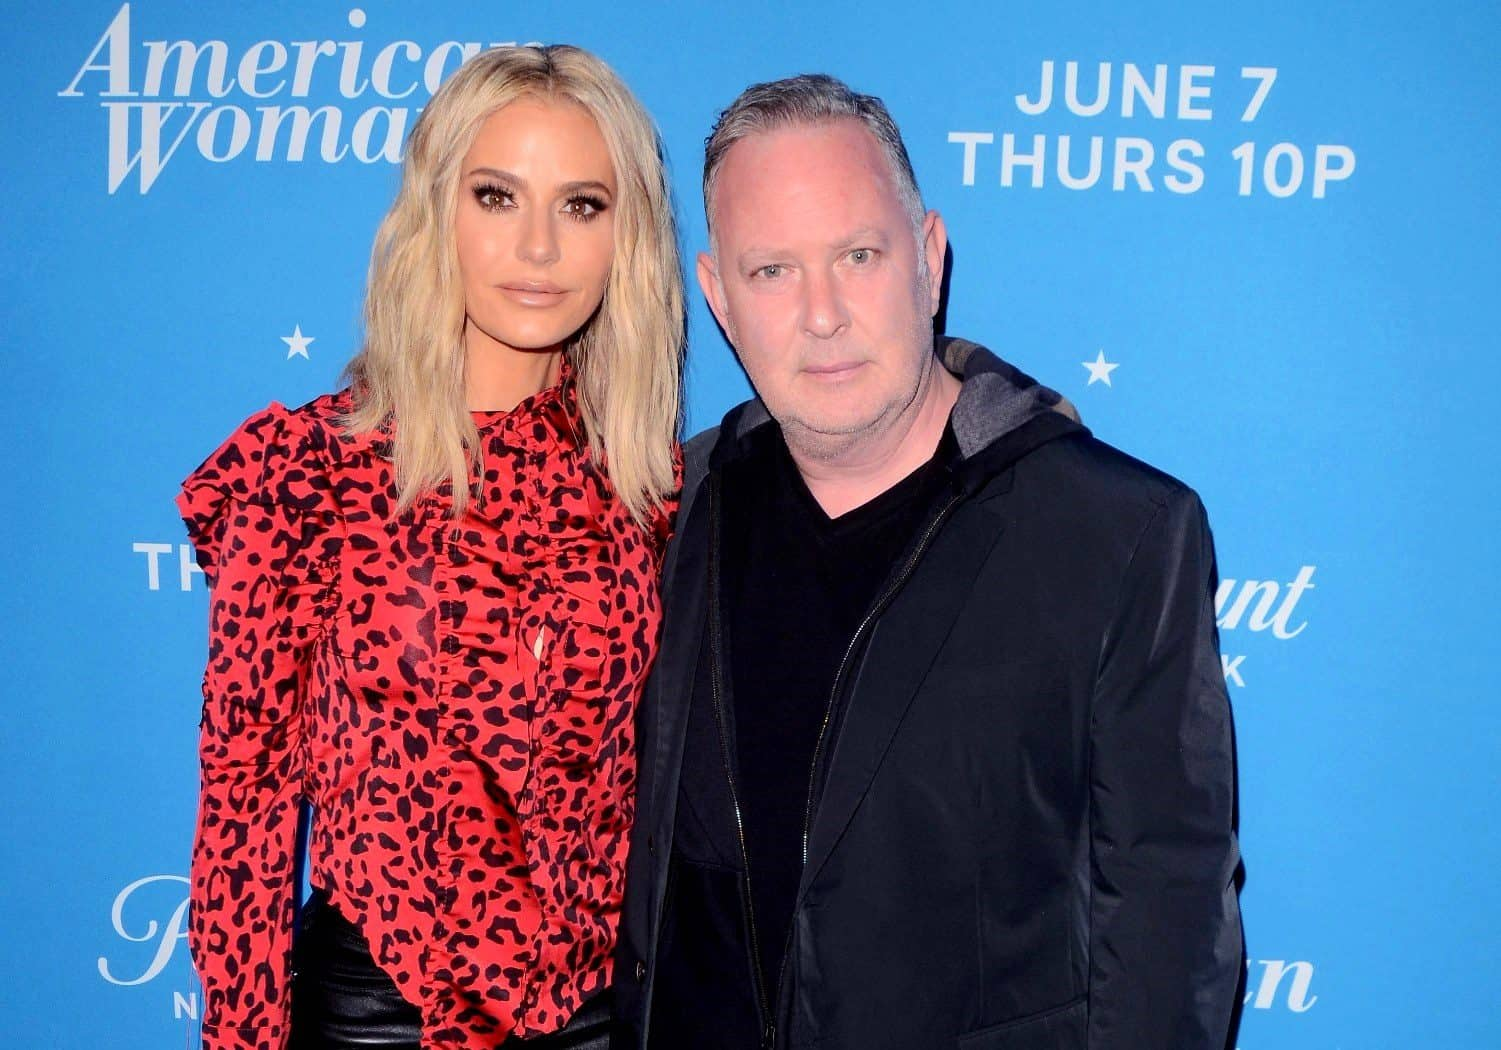 Have RHOBH's Dorit Kemsley And Husband Paul 'PK' Kemsley Put Their Money Troubles Behind Them